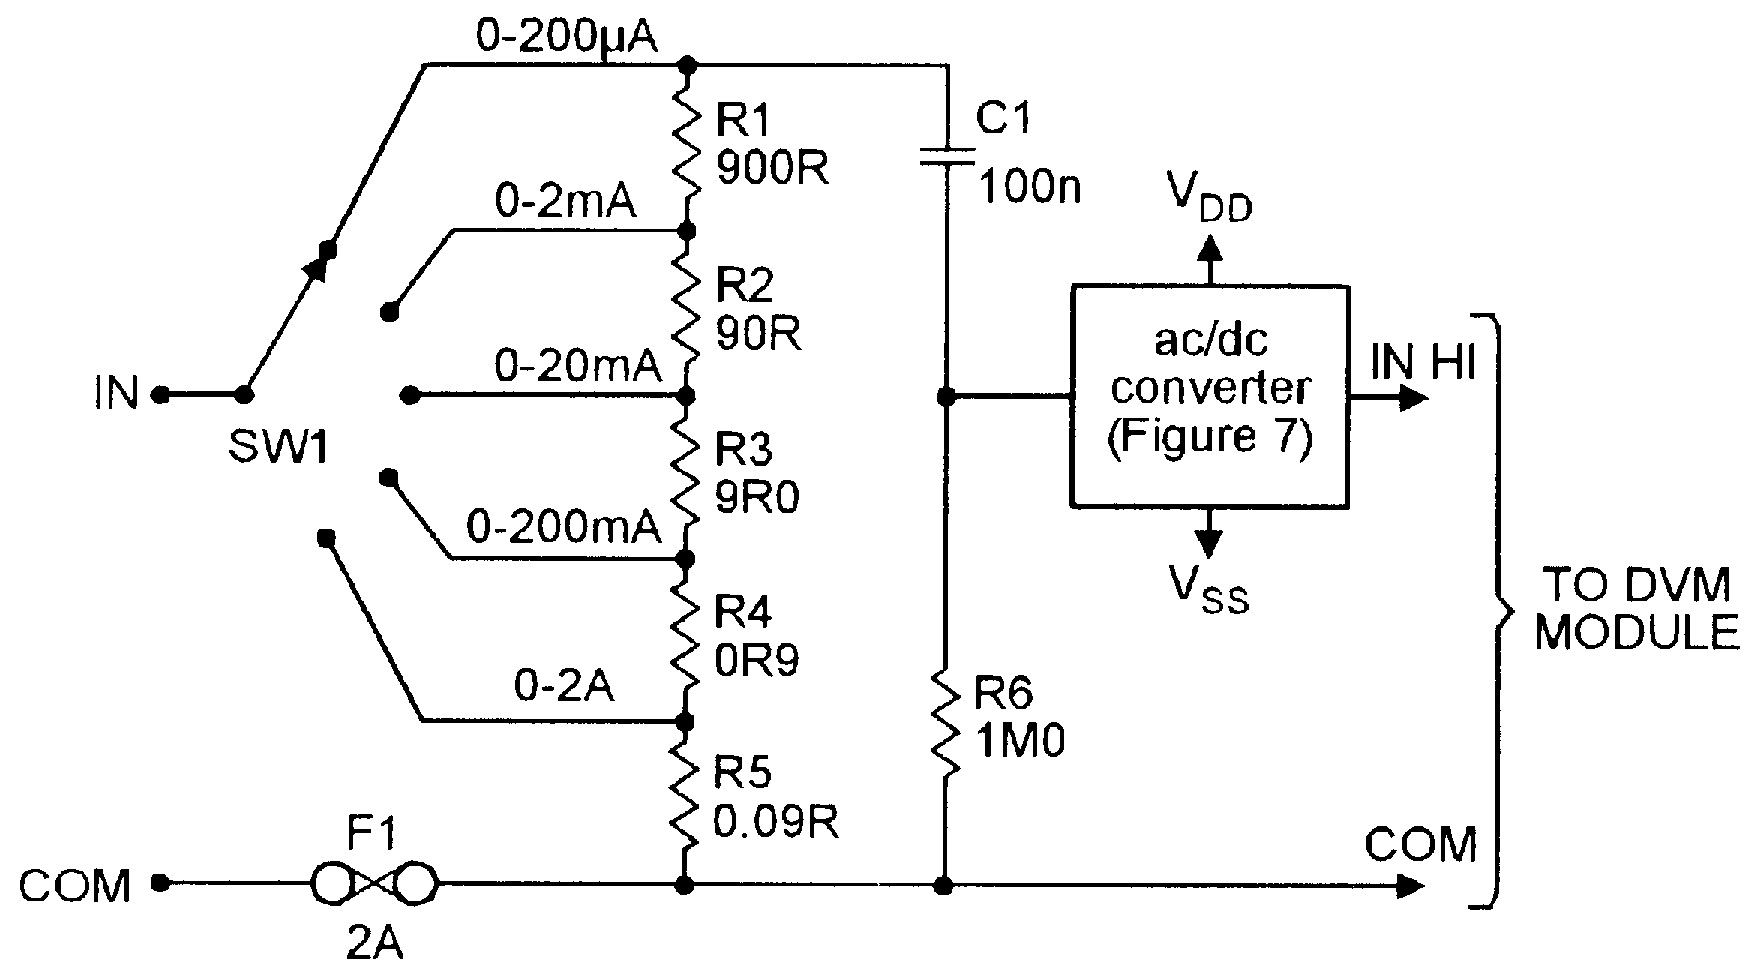 Op Amp Cookbook Part 4 Nuts Volts Magazine Watt 5 Led Dc To Constant Current Driver Circuit Wiring Five Range Ac Meter Converter For Use With Dvm Modules